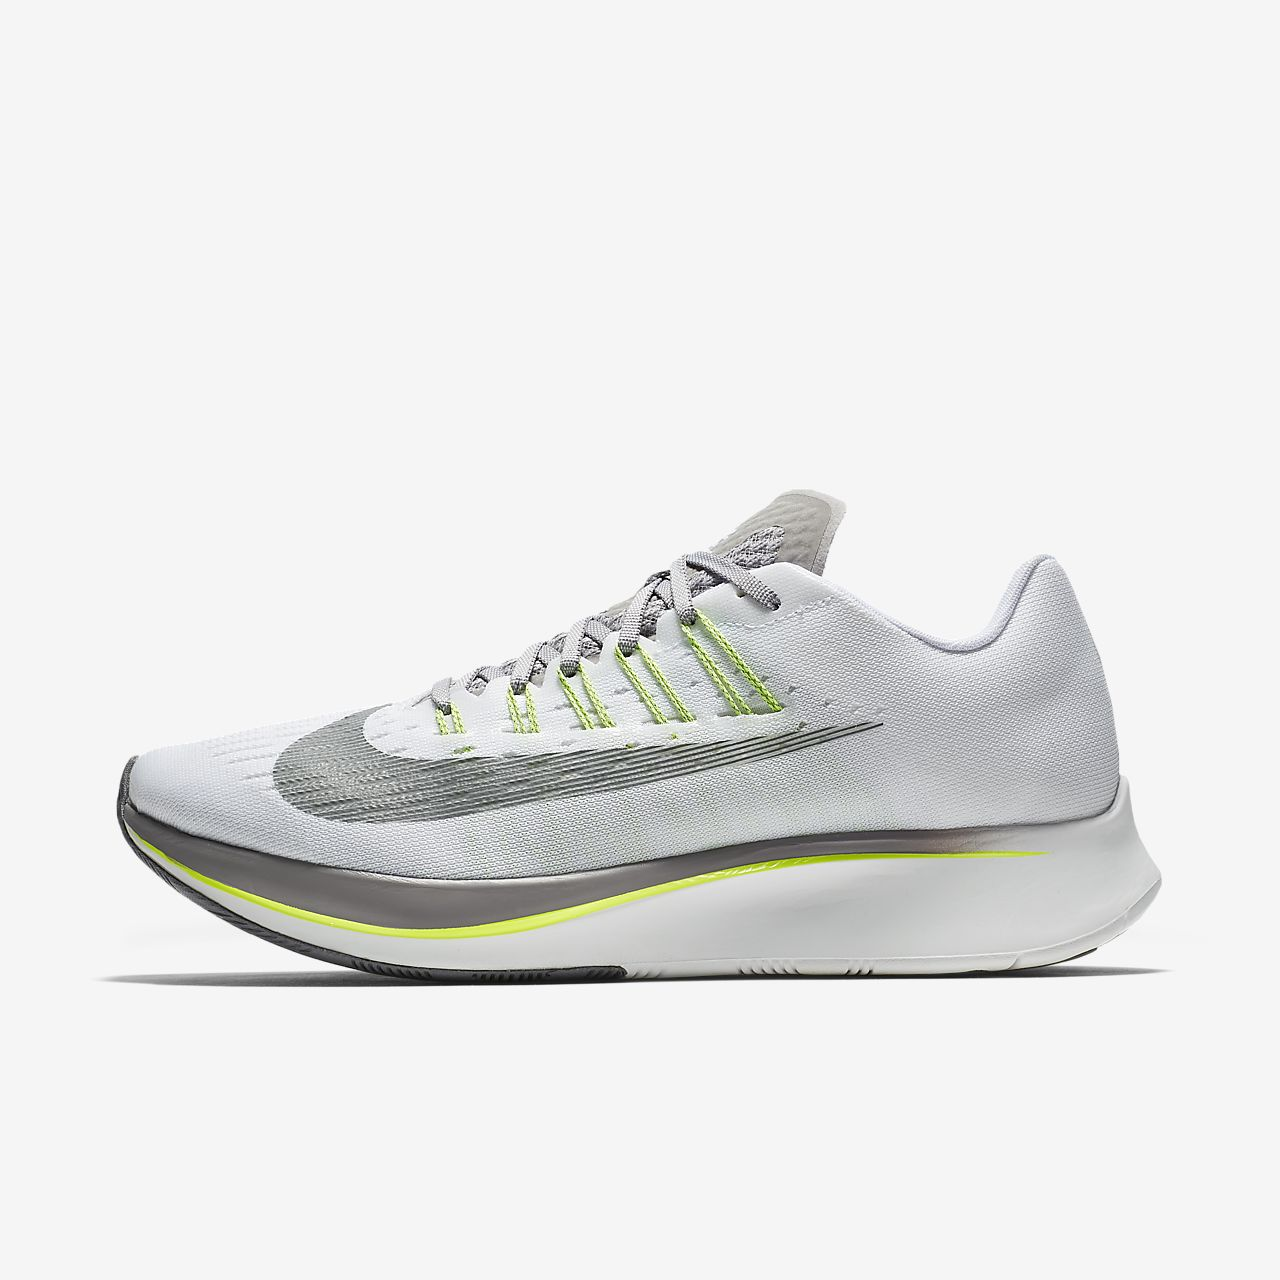 c8a6910e9a5 Nike Zoom Fly Men s Running Shoe. Nike.com